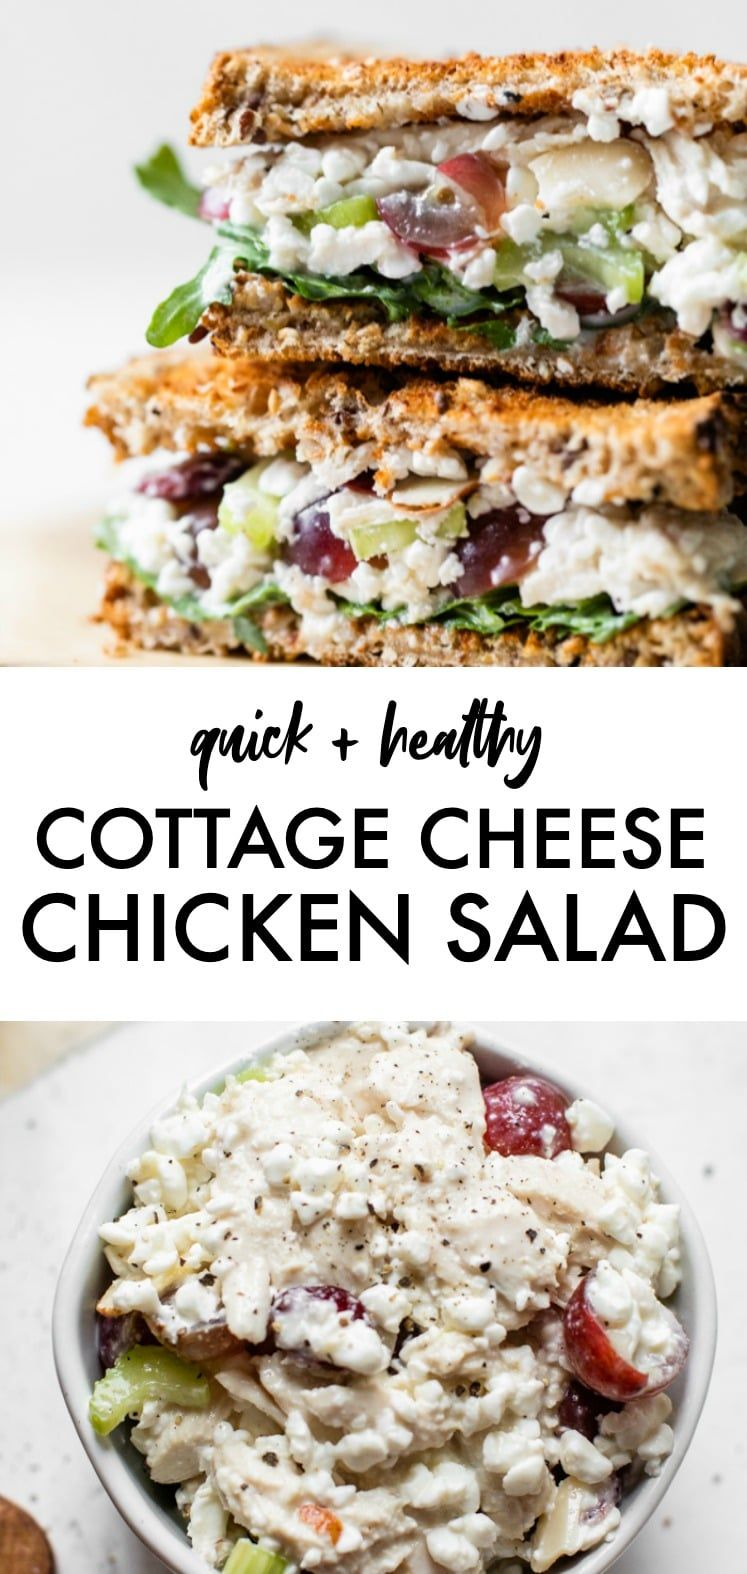 Easy Cottage Cheese Chicken Salad Sandwich Recipe That S Made With Cottage Cheese I In 2020 Cottage Cheese Recipes Healthy Cottage Cheese Dinner Cottage Cheese Recipes